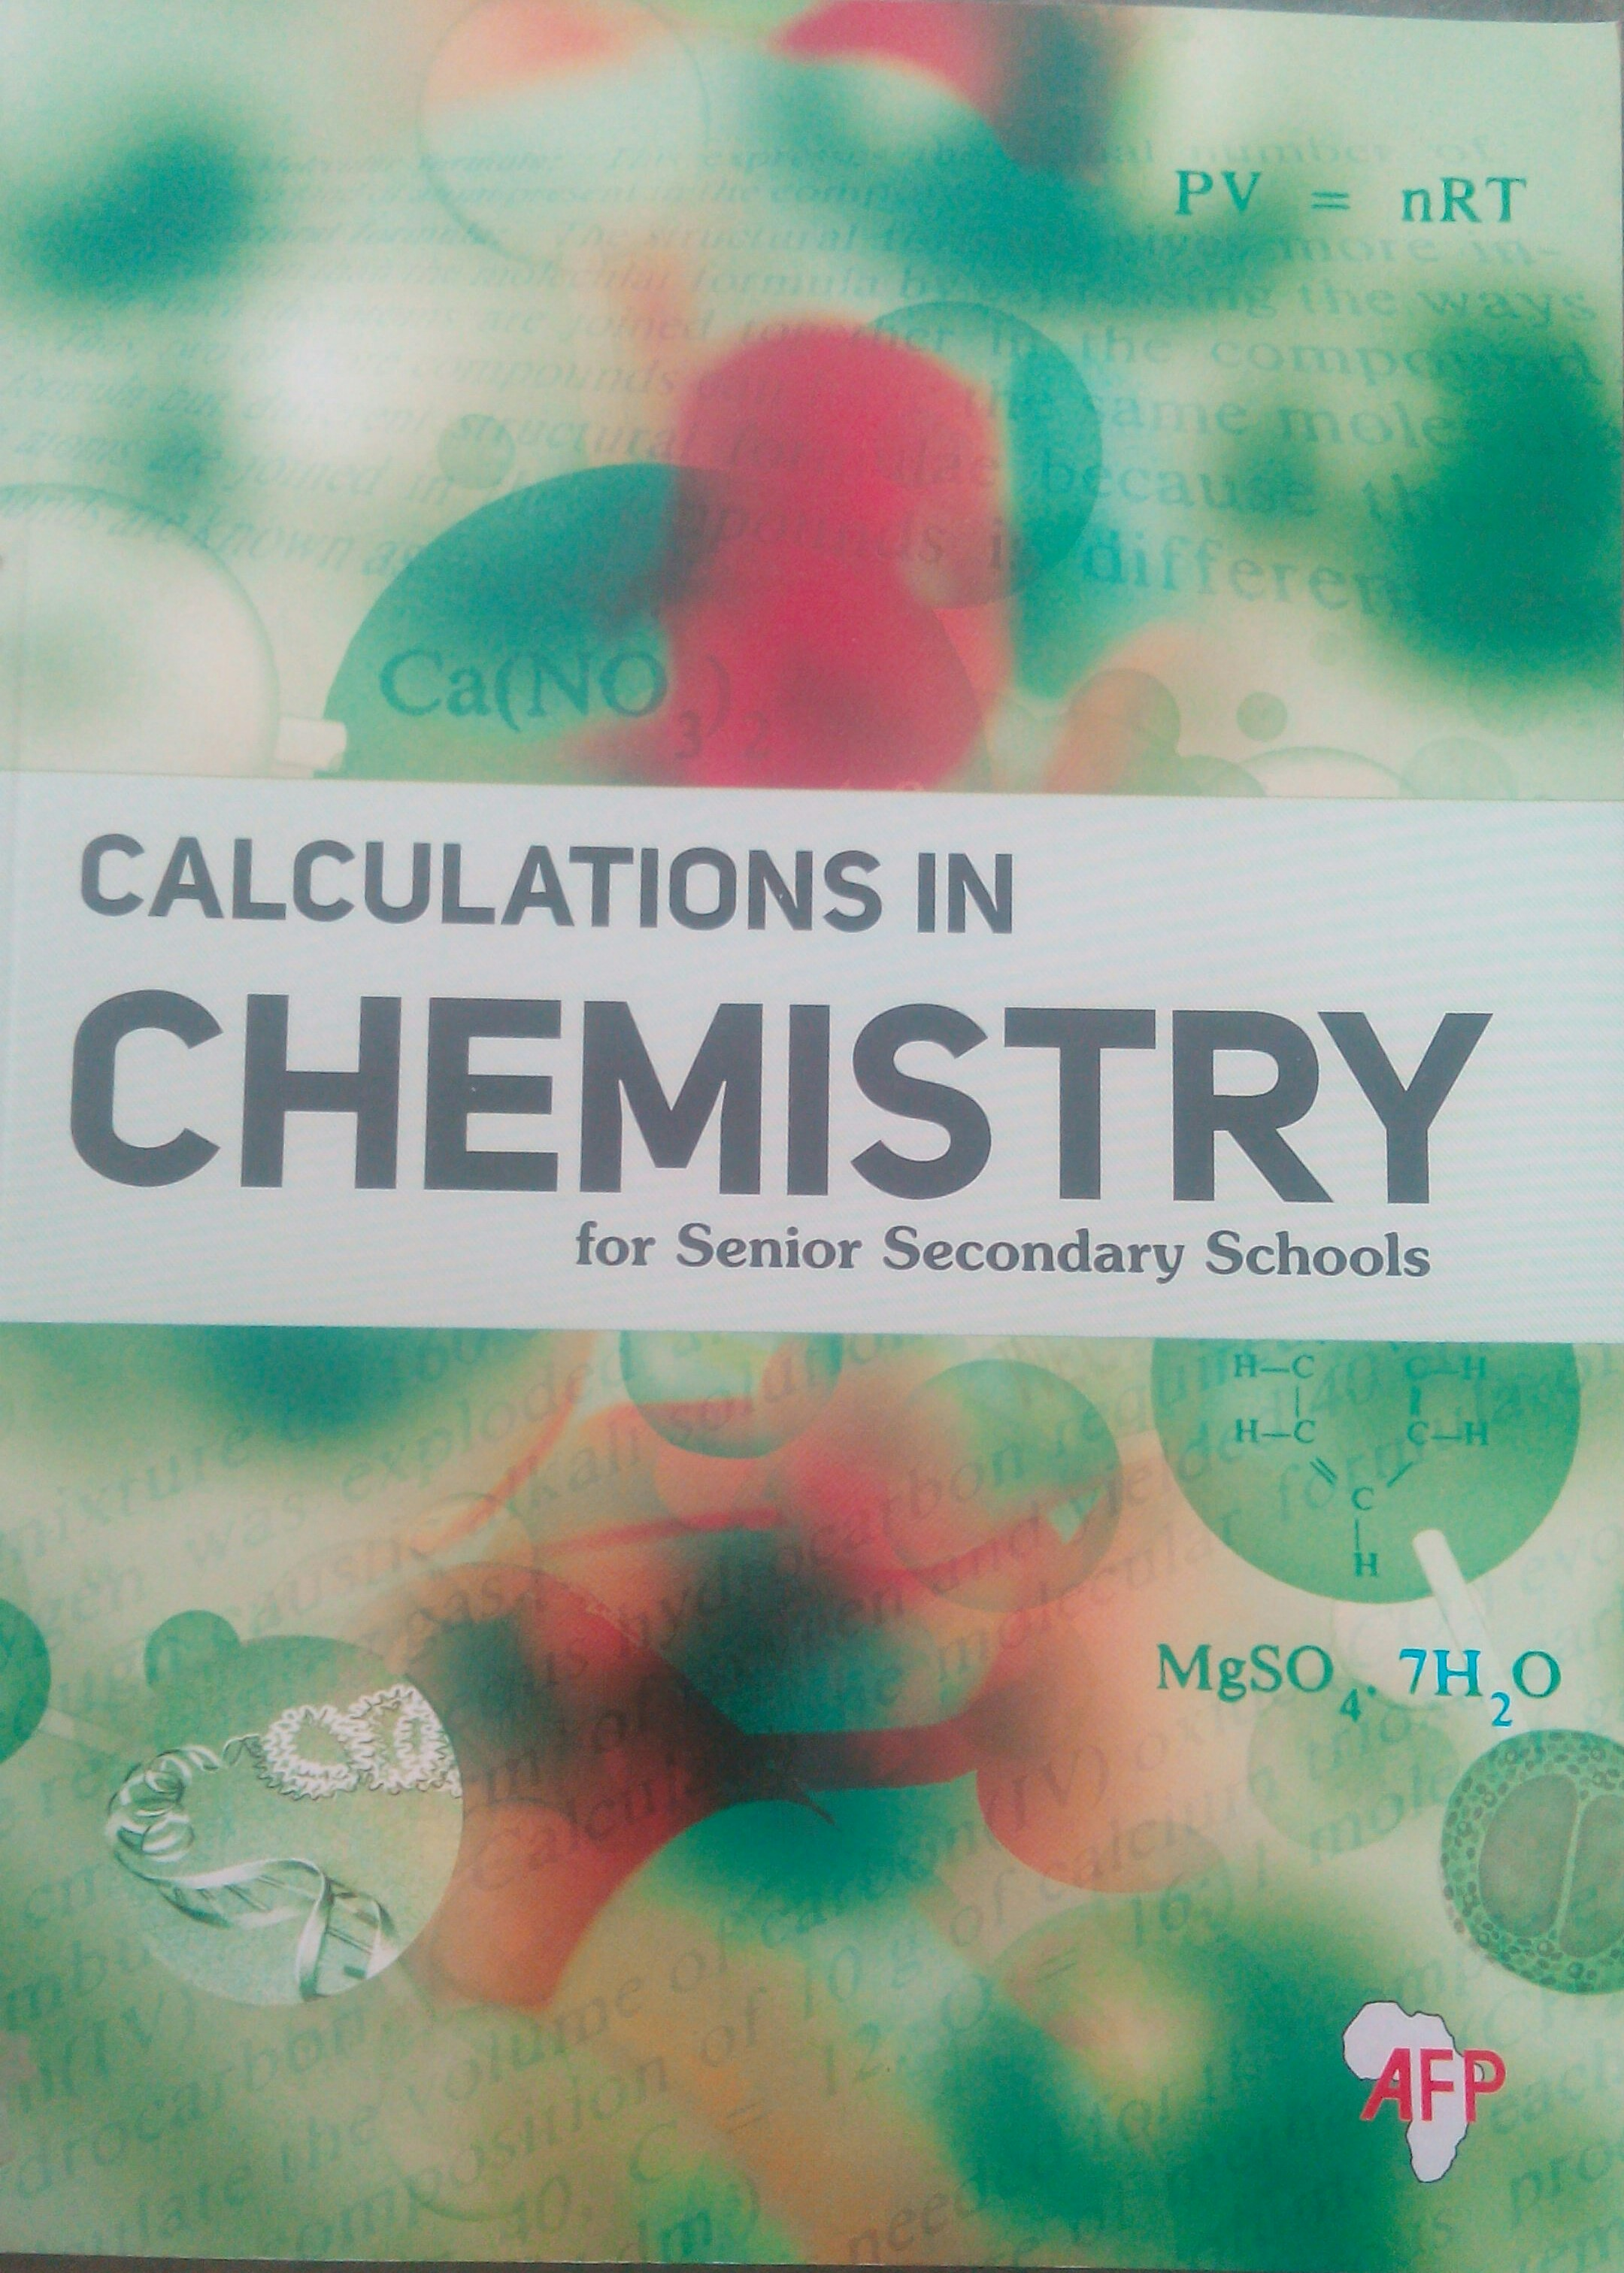 Calculations in Chemistry for Senior Secondary Schools